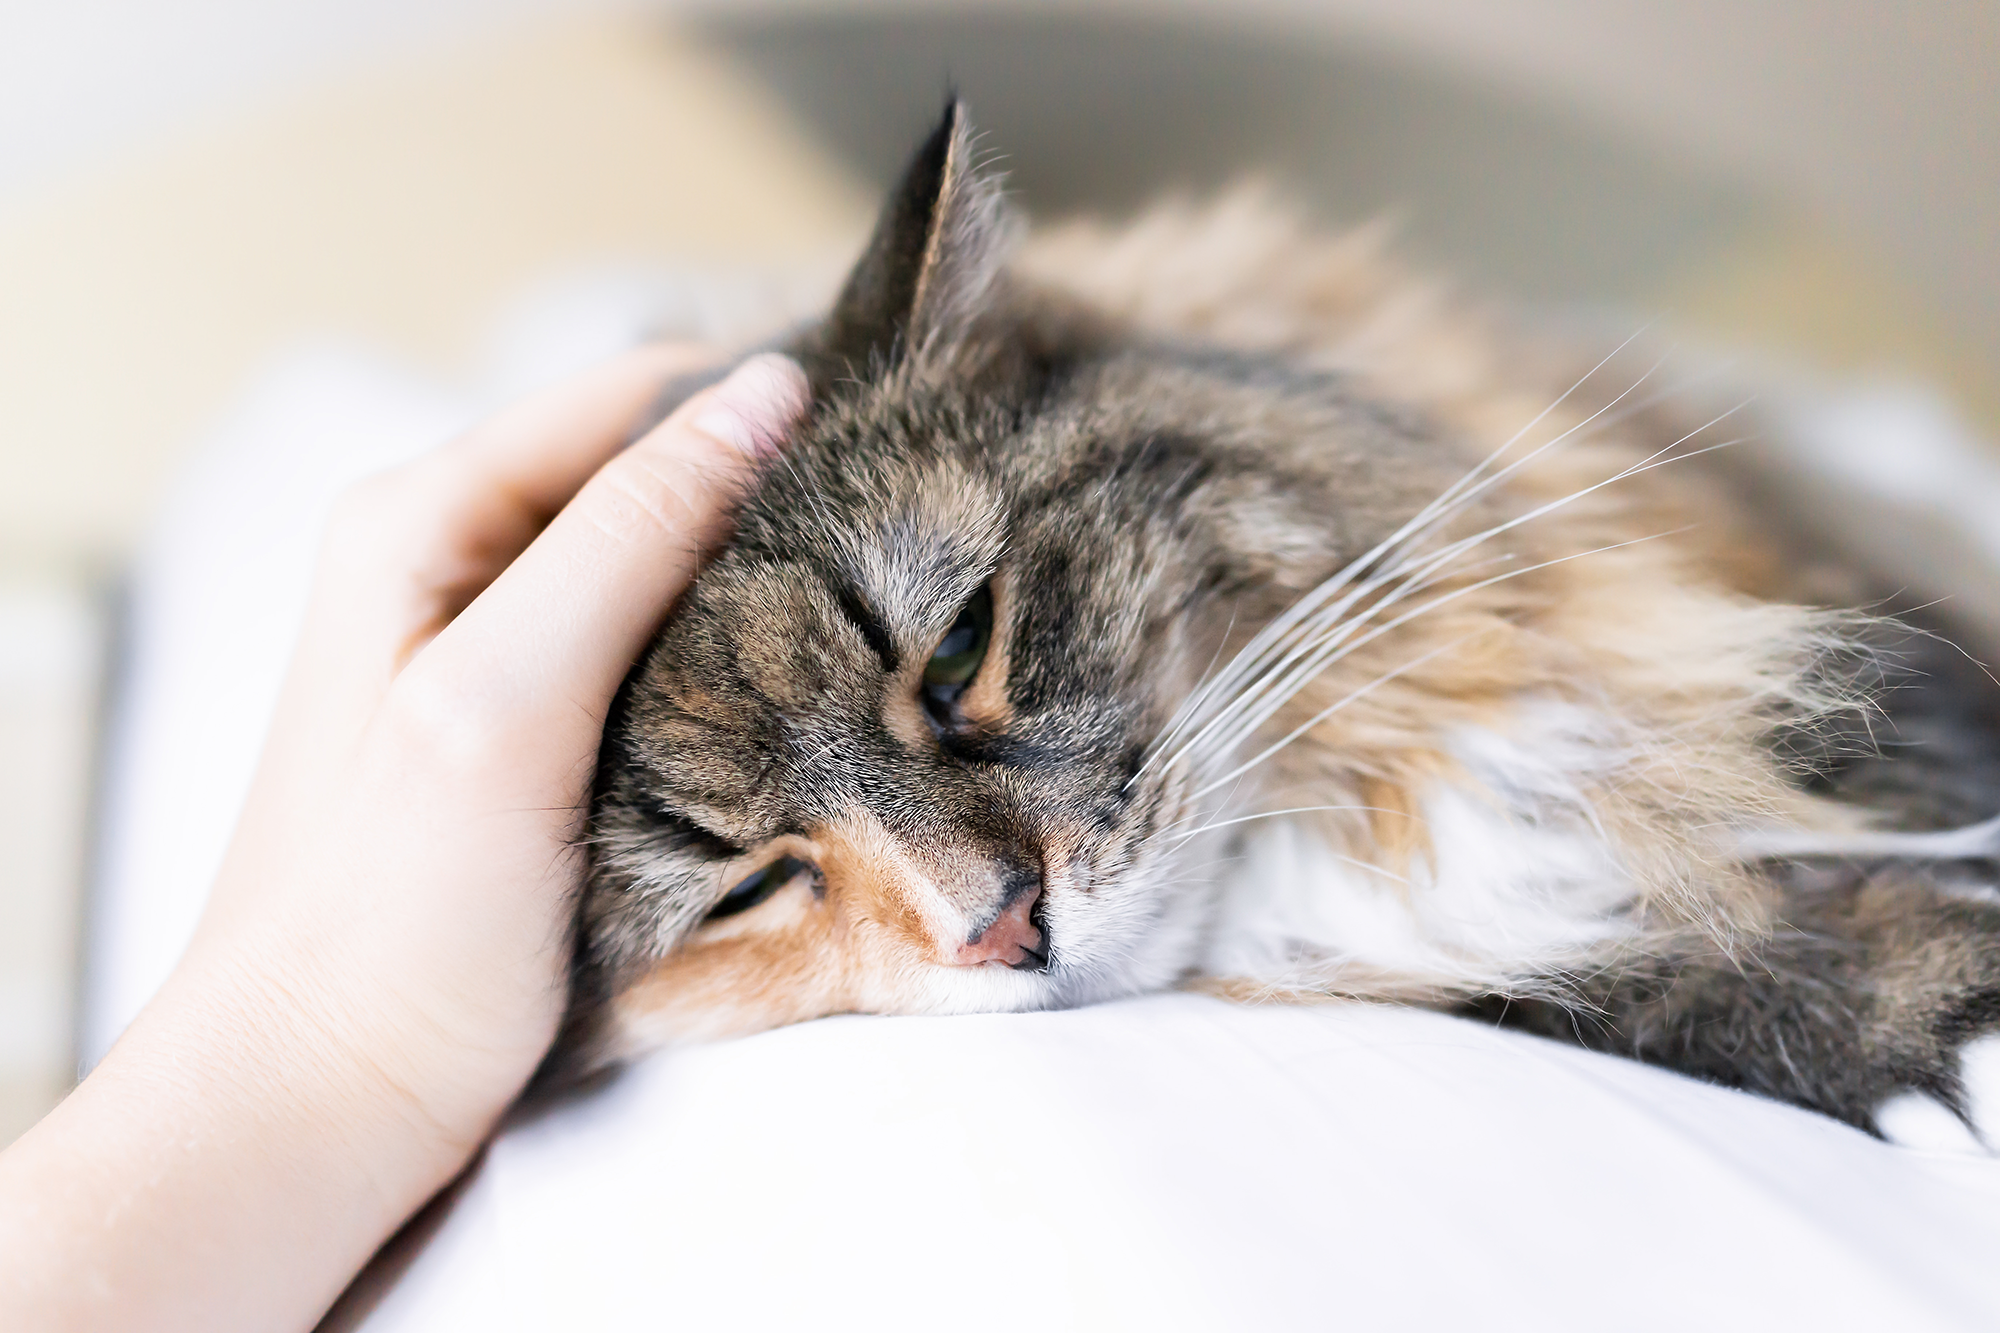 close-up of cat with a person's hand on her head